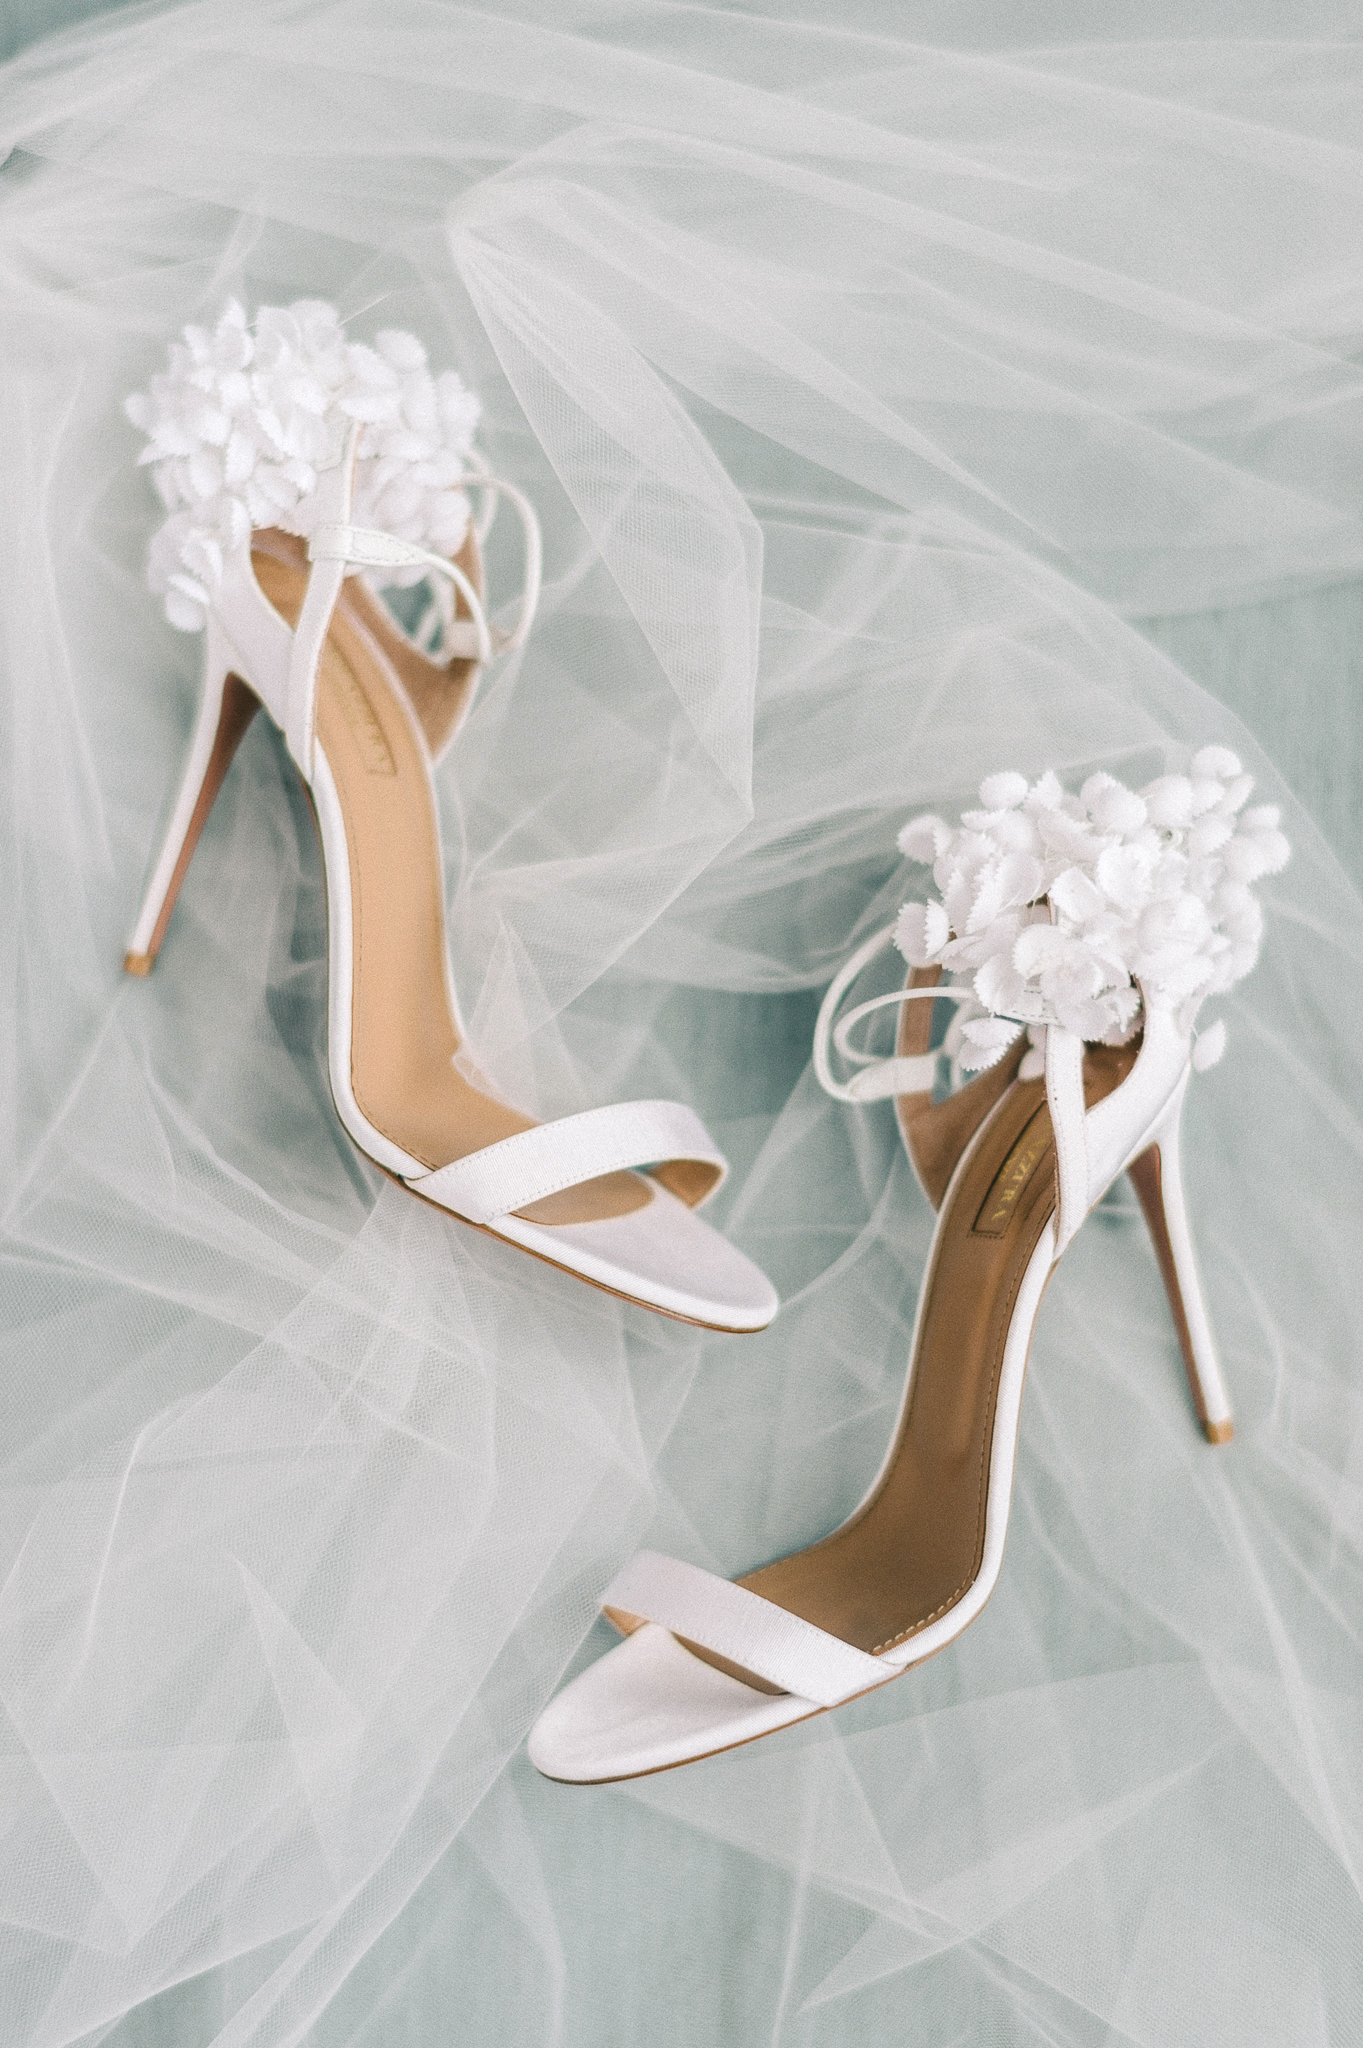 How to Make Sure Your Wedding Dress Won't Drag on the Floor If You Change Shoes During the Reception